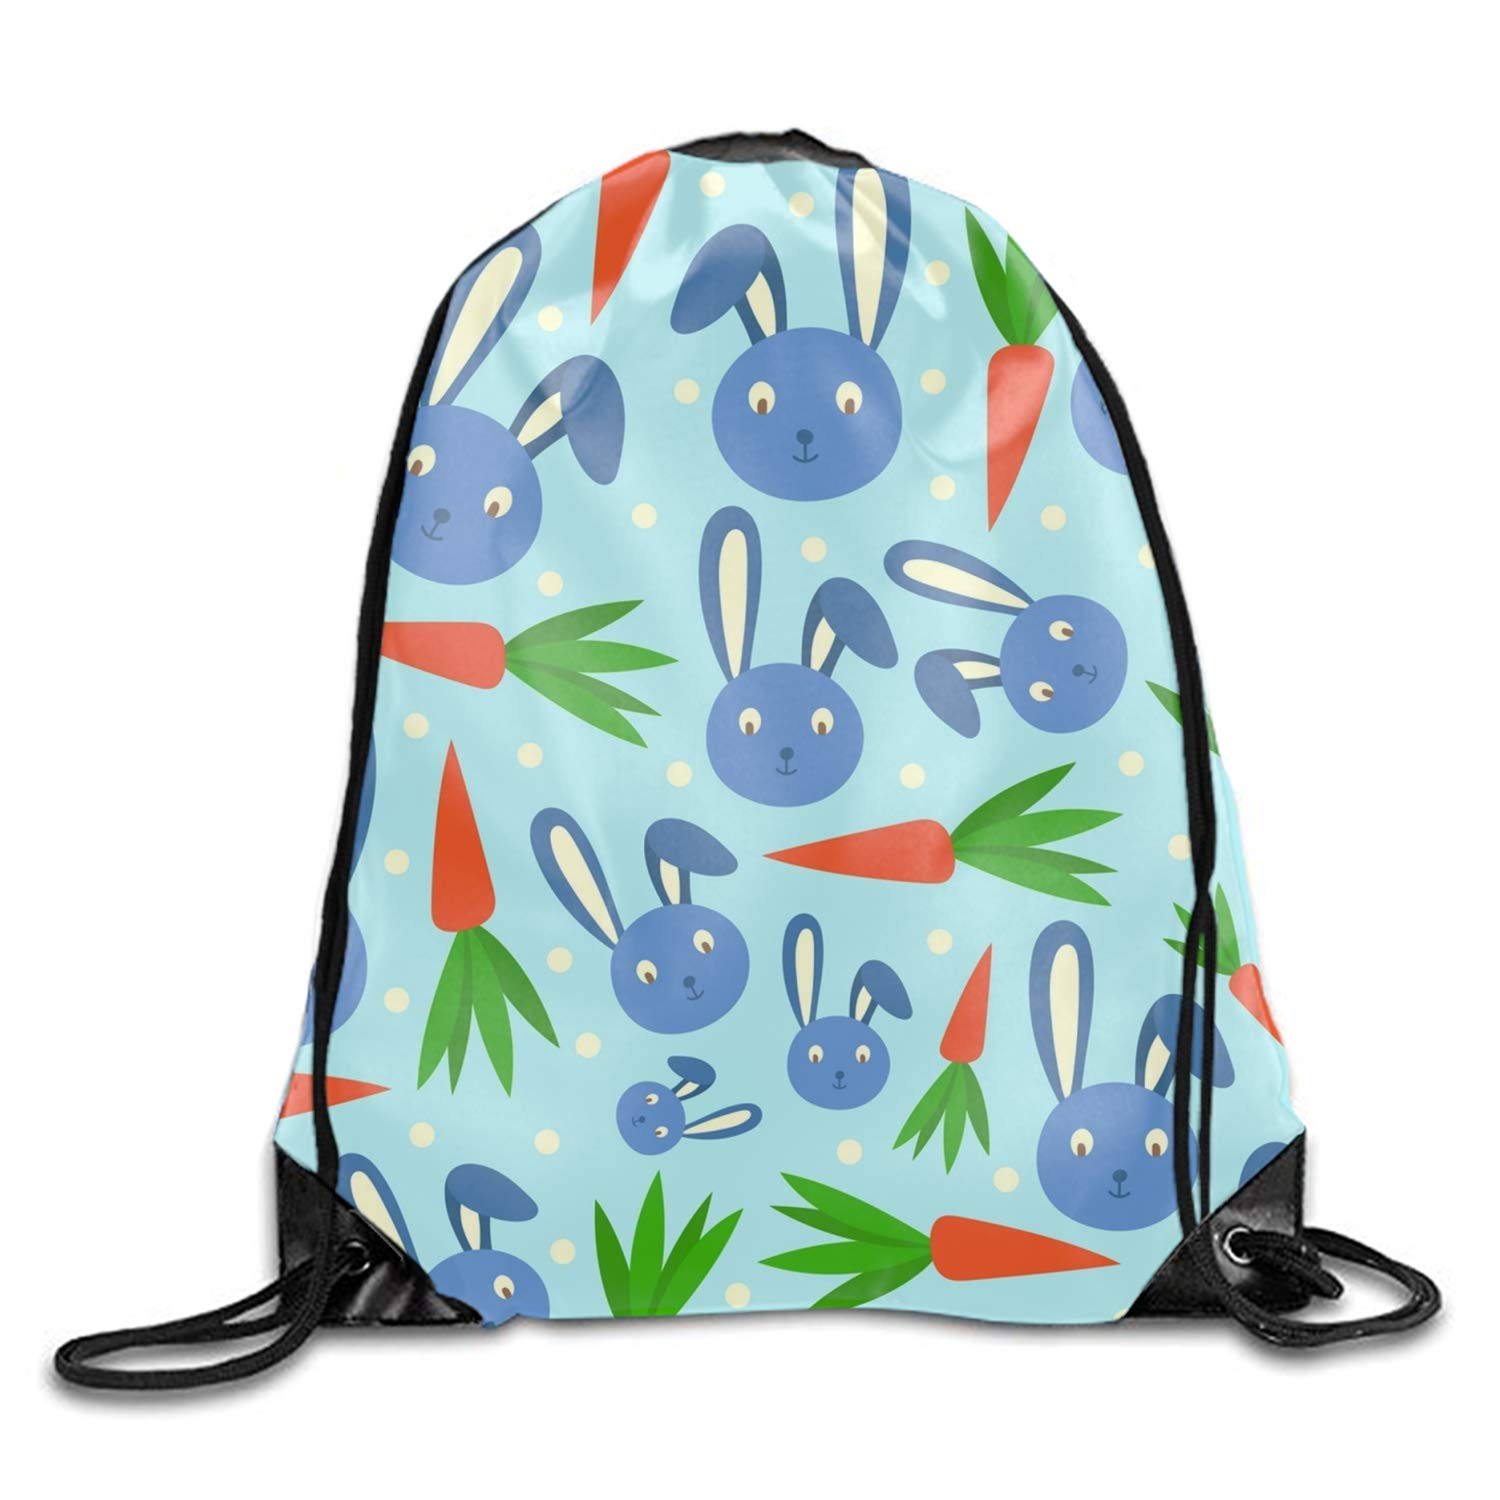 Rabbit Cartoon Gym Drawstring Bags Draw Rope Shopping Travel Backpack Tote Student Camping